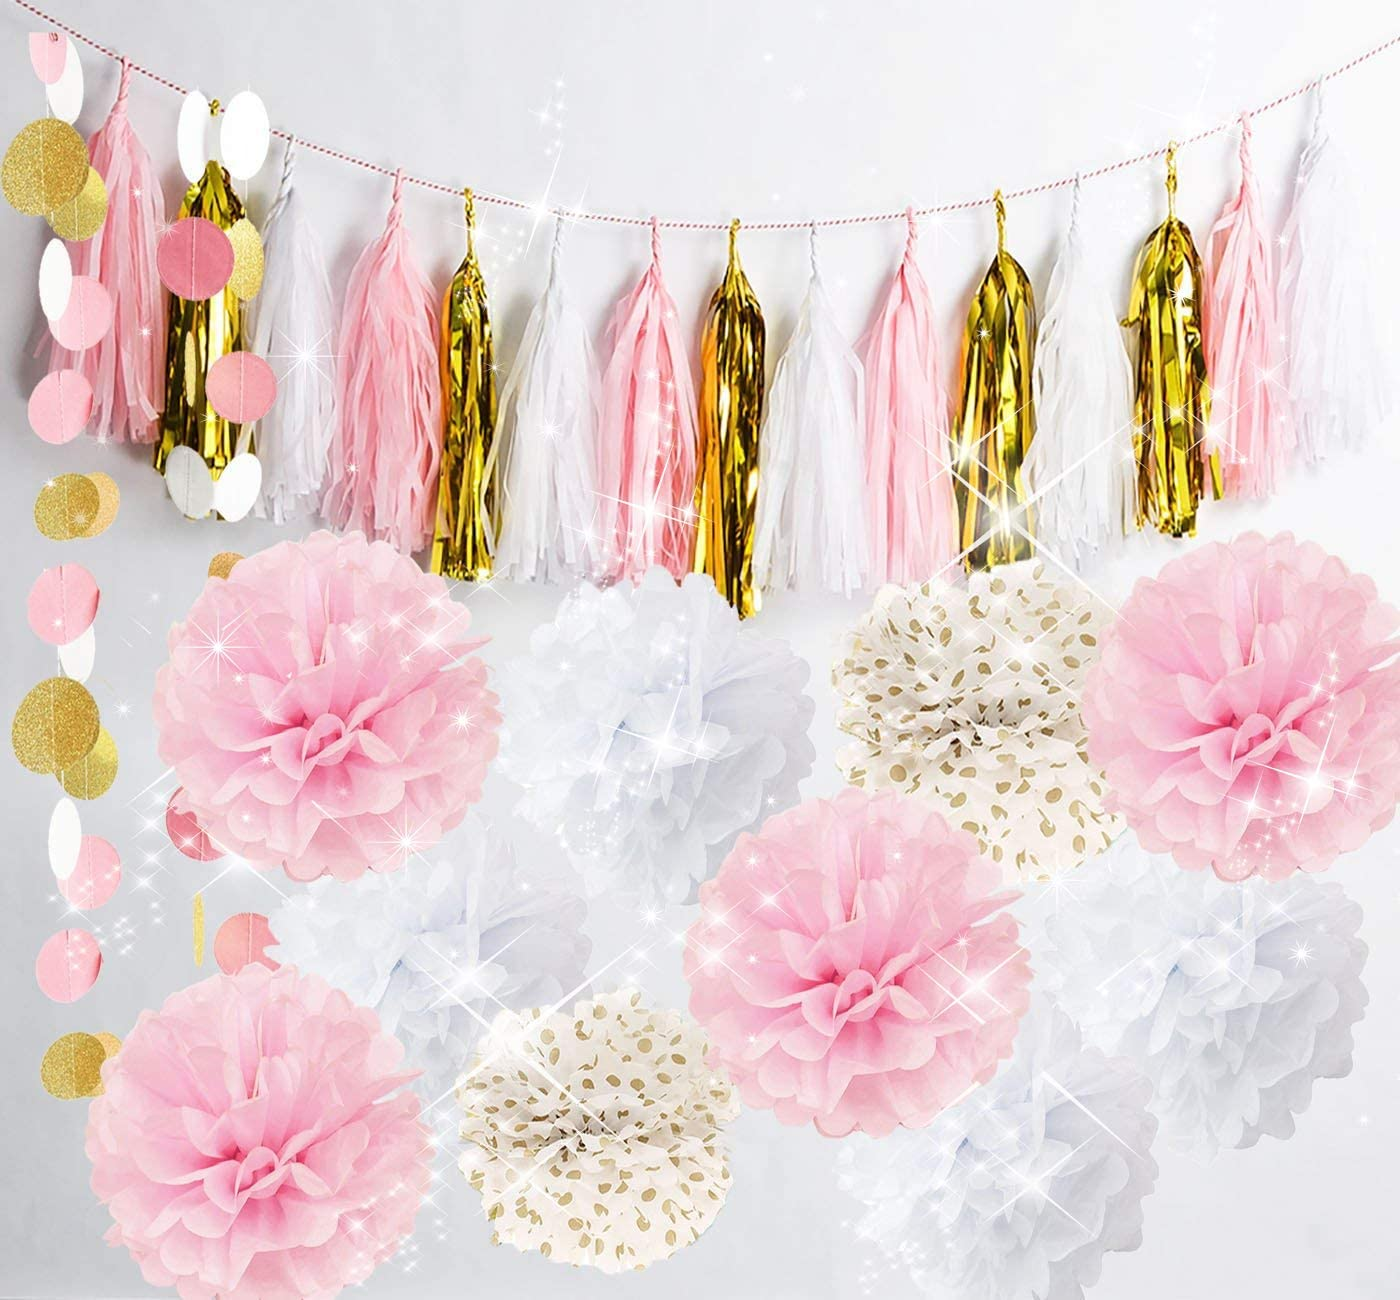 Pink Gold And White Decorations  from images-na.ssl-images-amazon.com